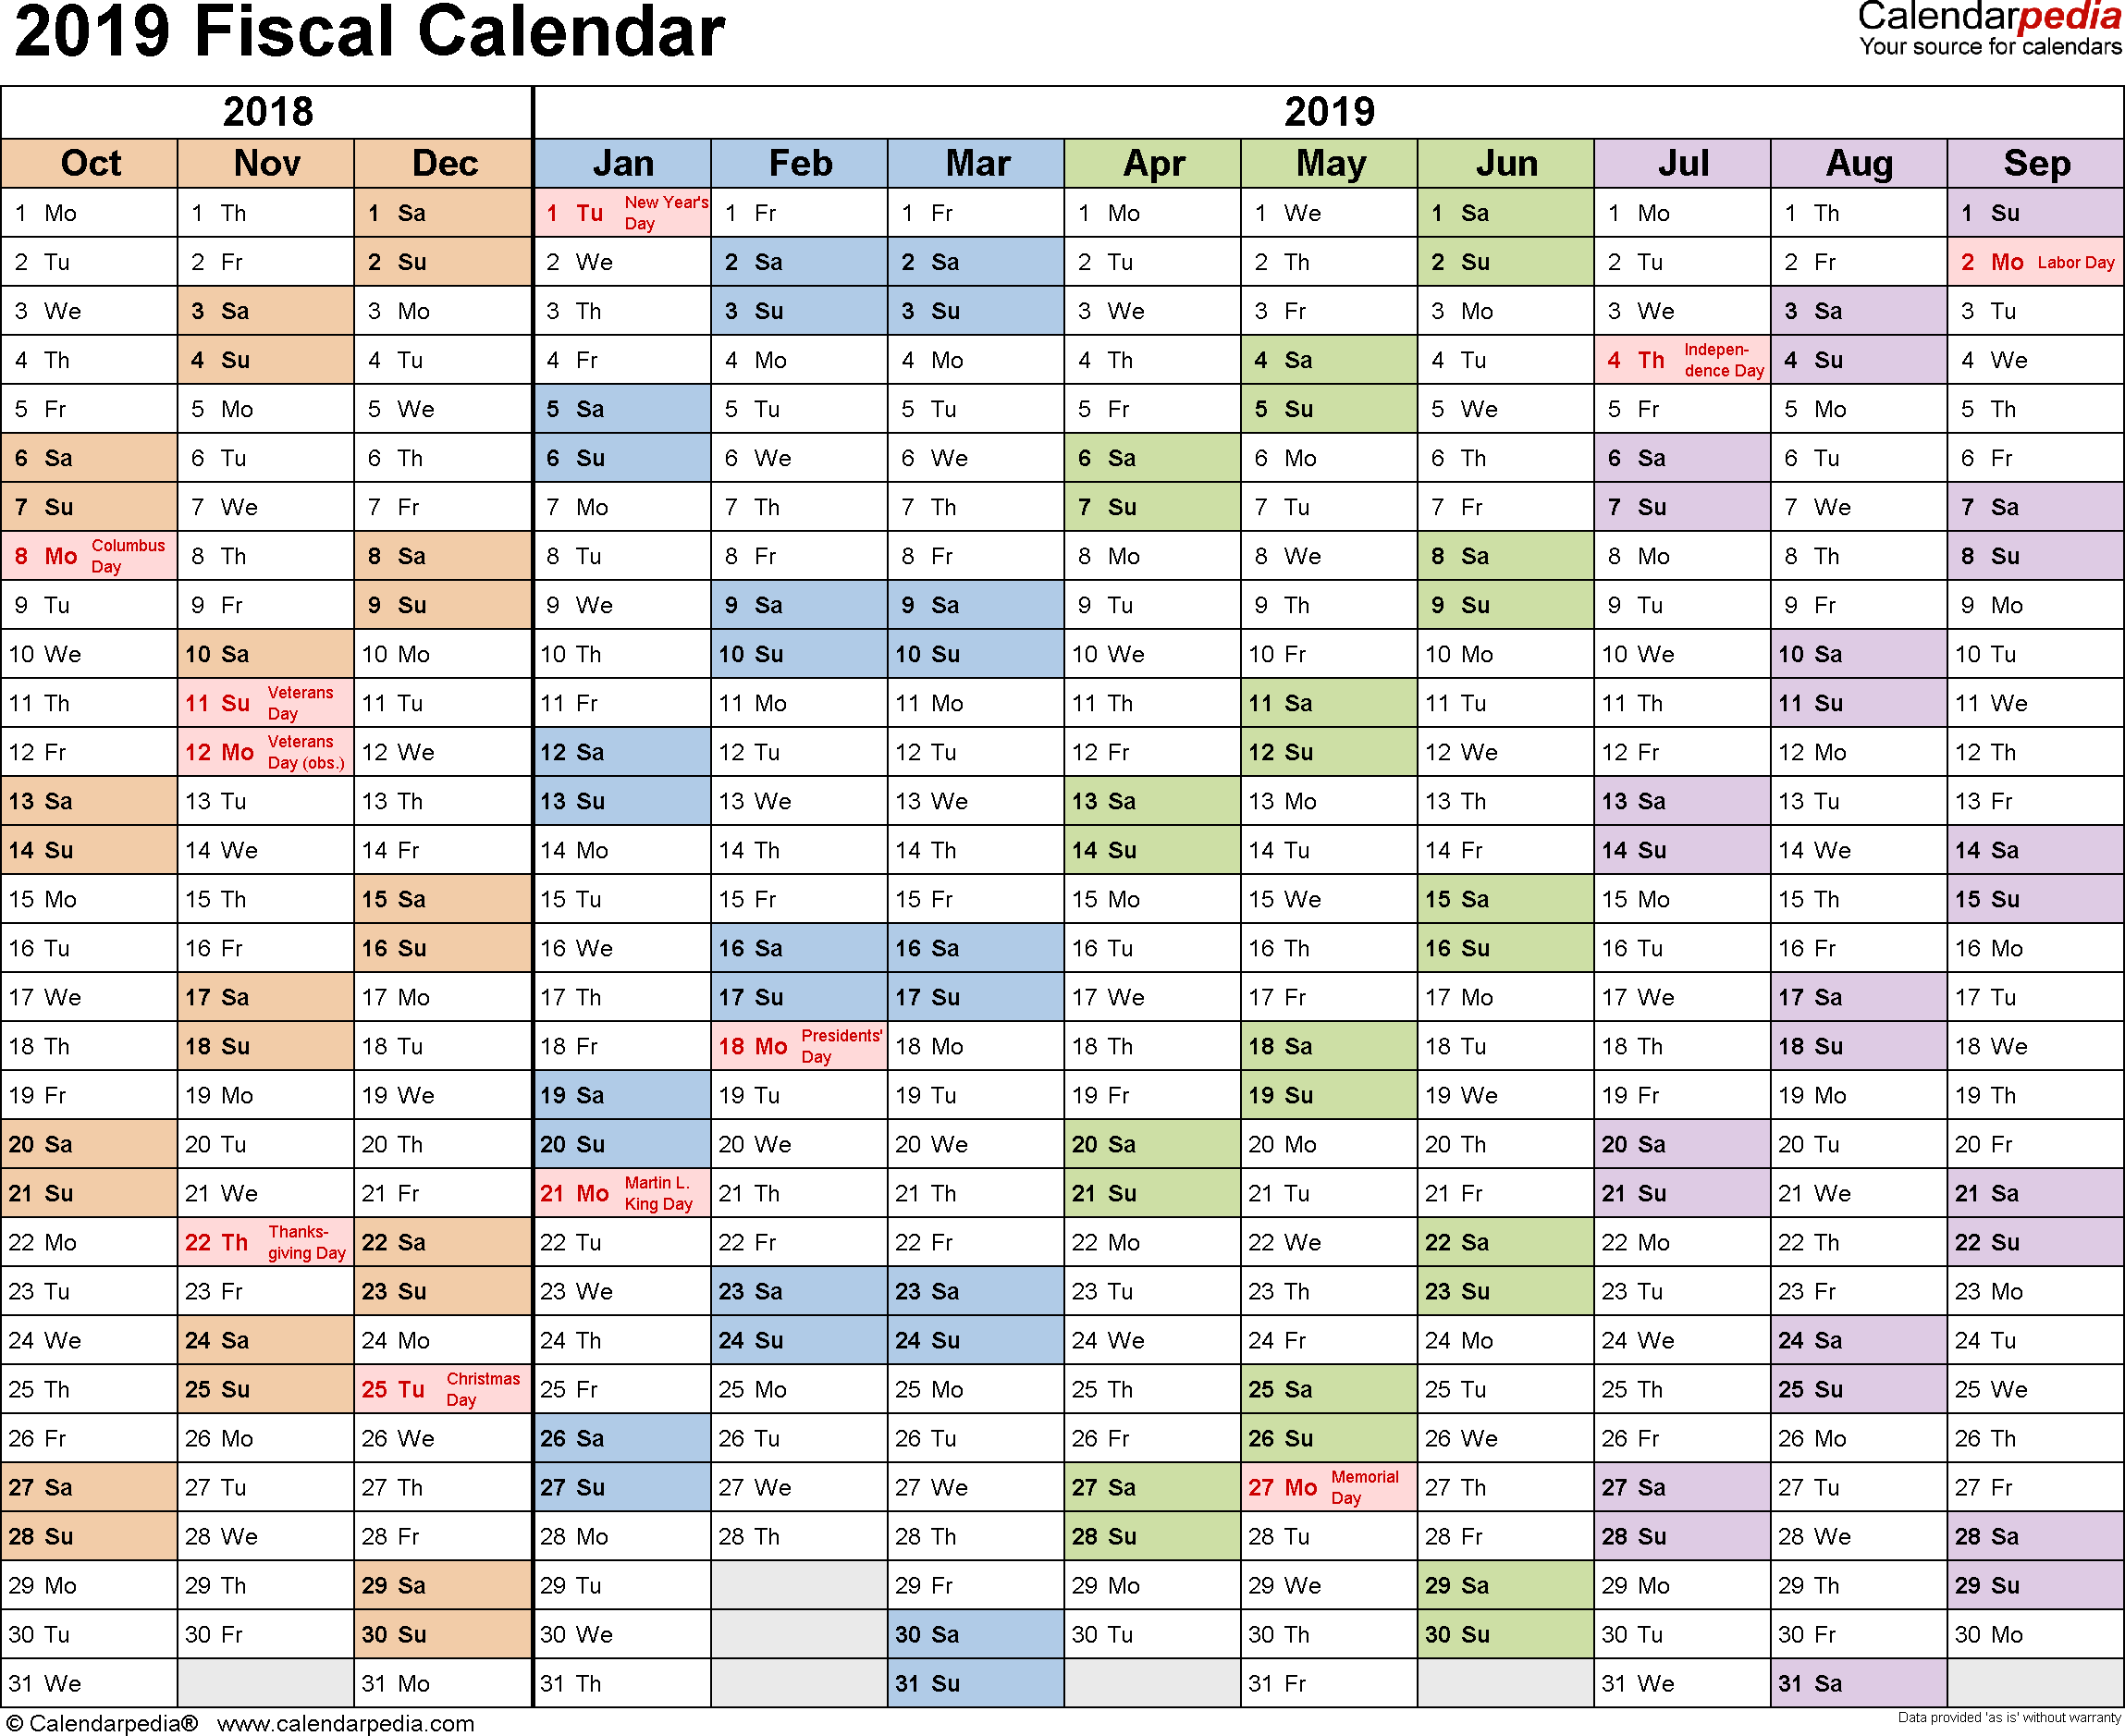 Fiscal Calendars 2019 - Free Printable Word Templates within Payroll Calendar 2020 Revenue Canada